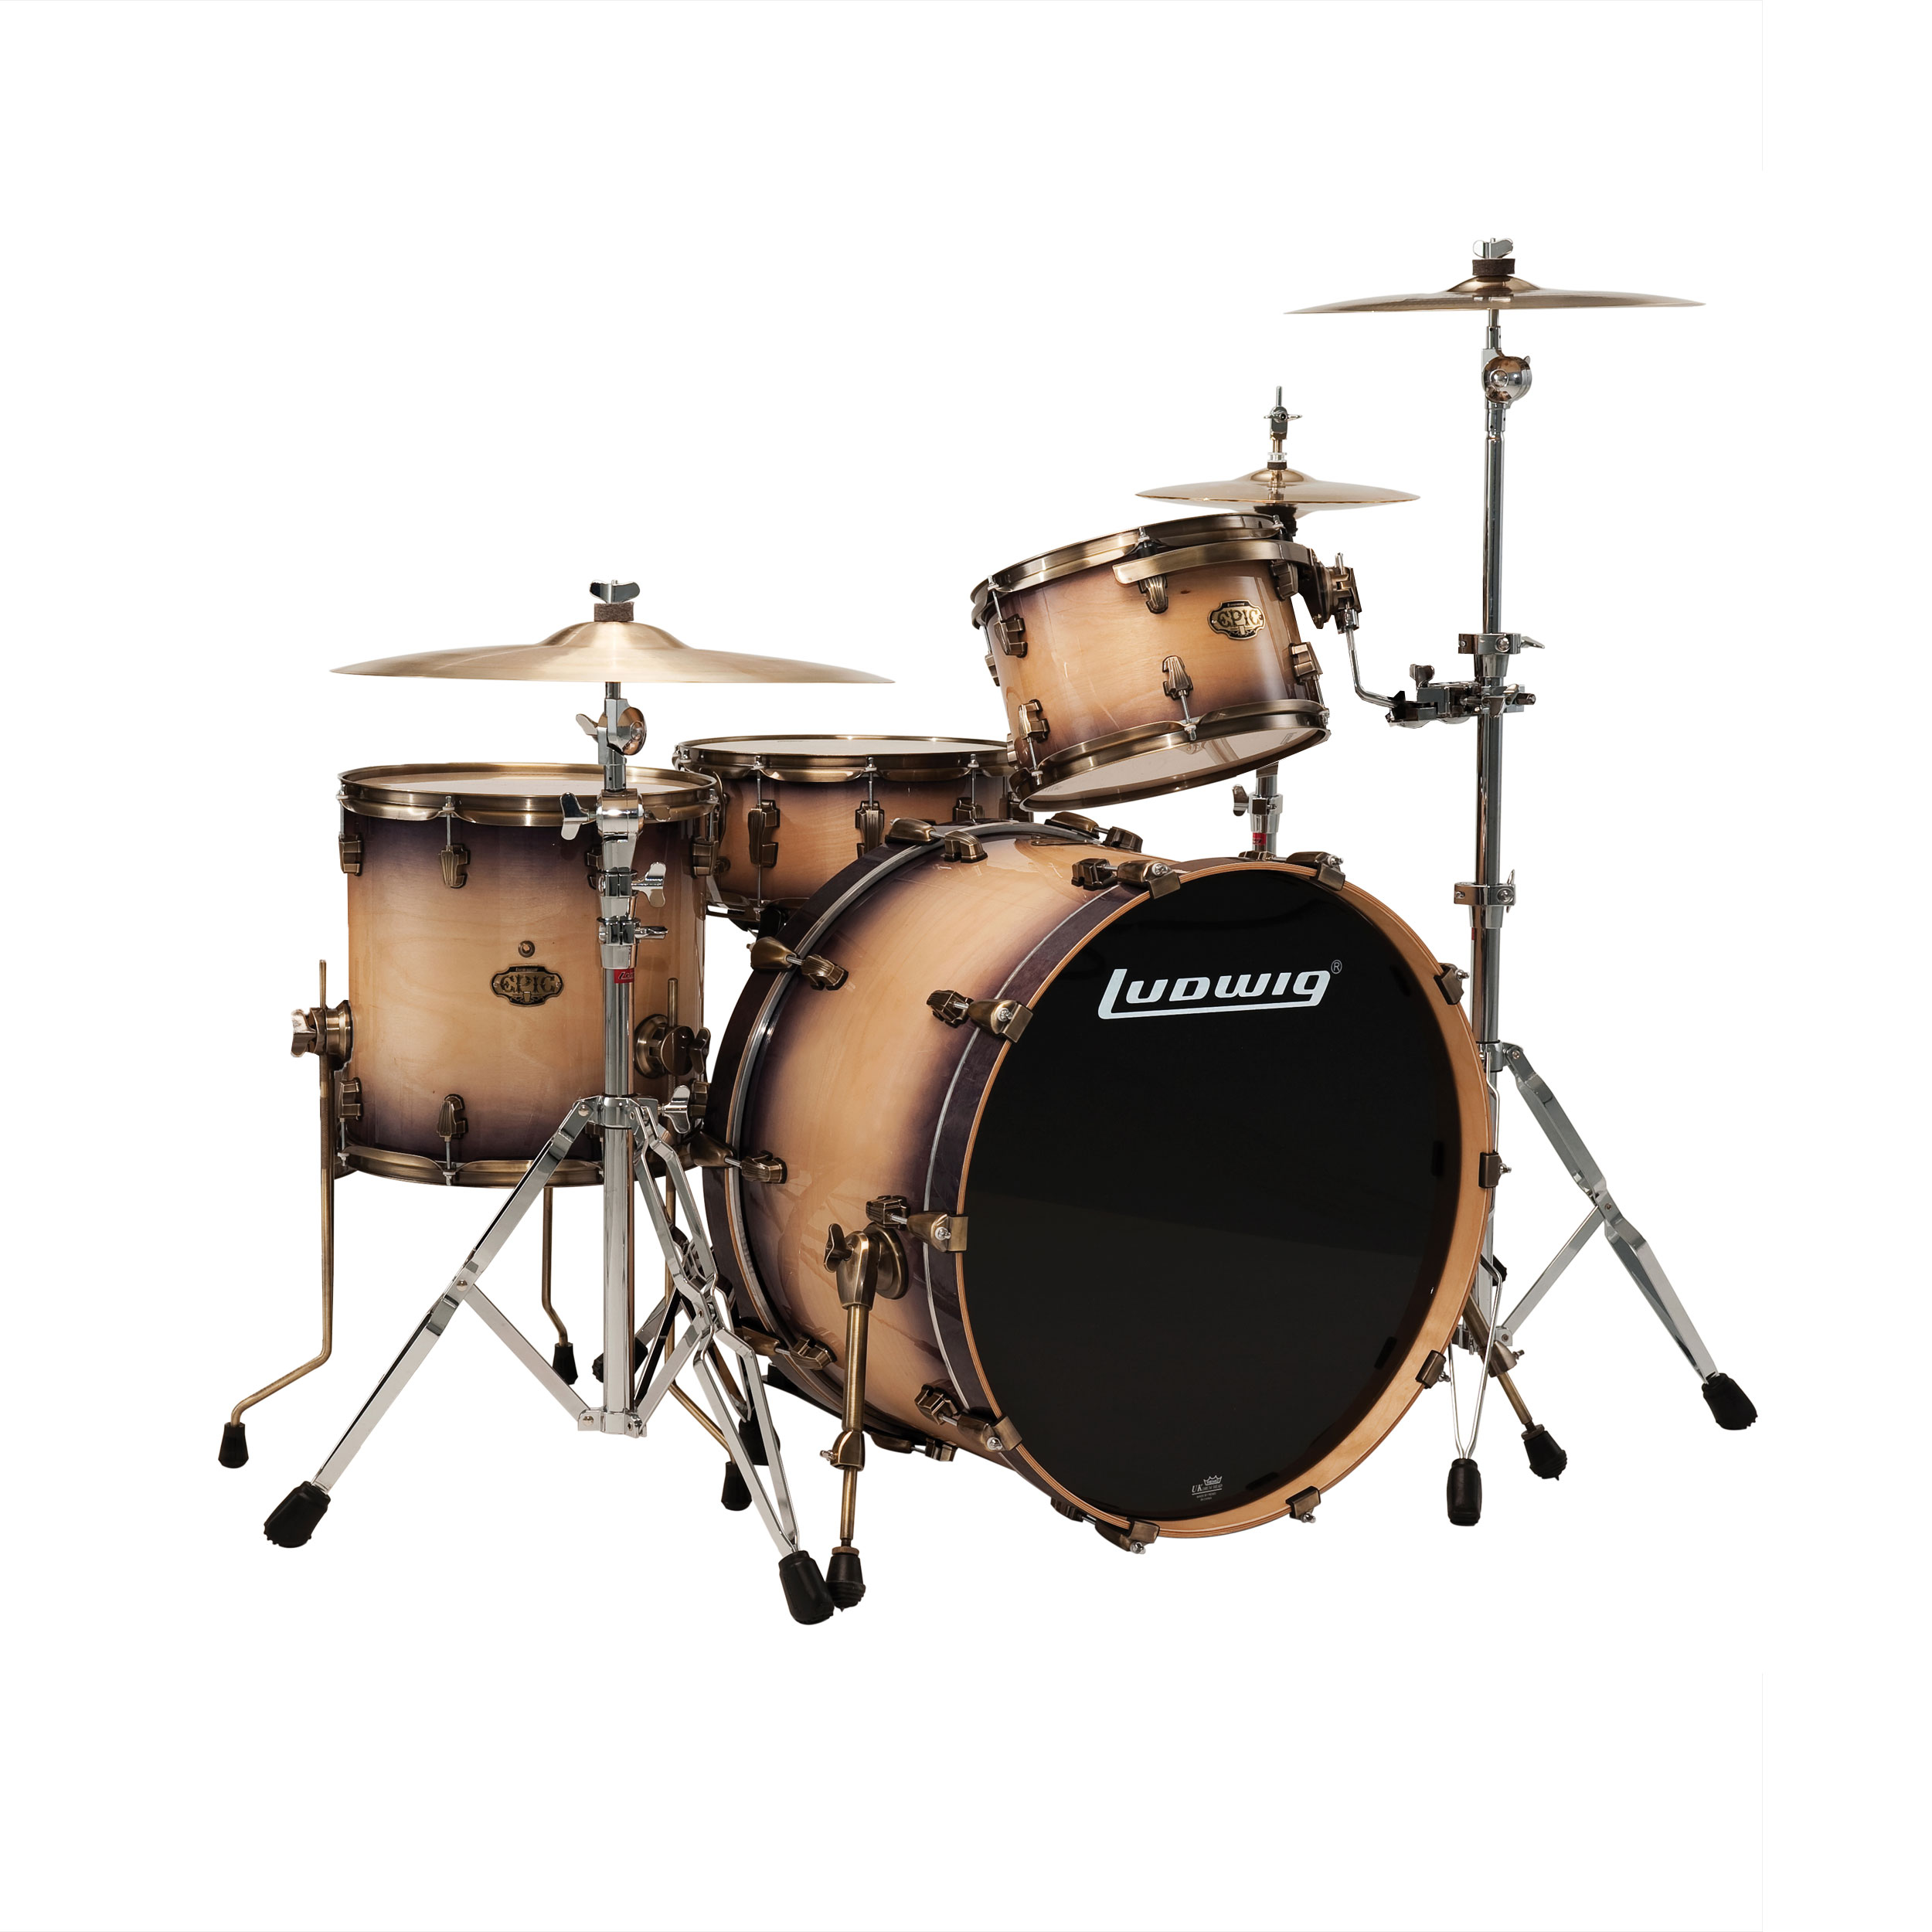 ludwig epic series standard 4 piece drum set shell pack 20 bass 14 snare 12 14 toms. Black Bedroom Furniture Sets. Home Design Ideas